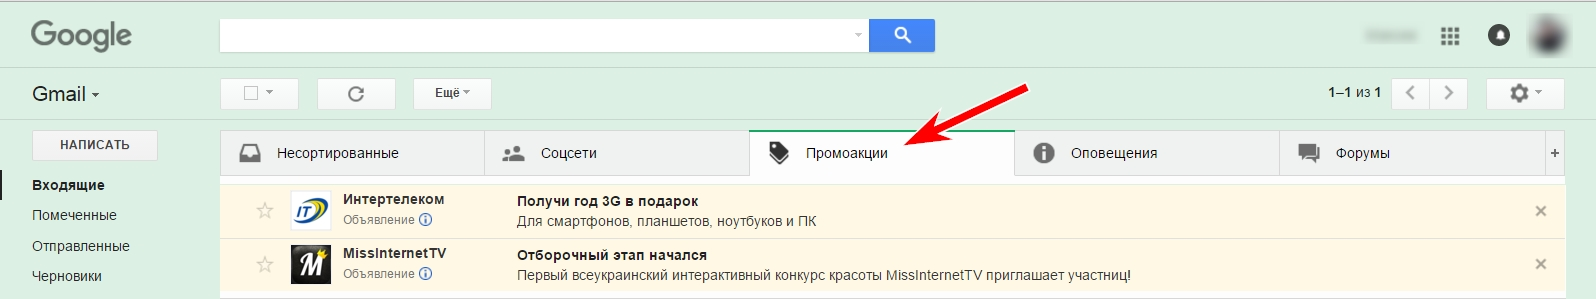 Gmail Sponsored Promotions (GSP)